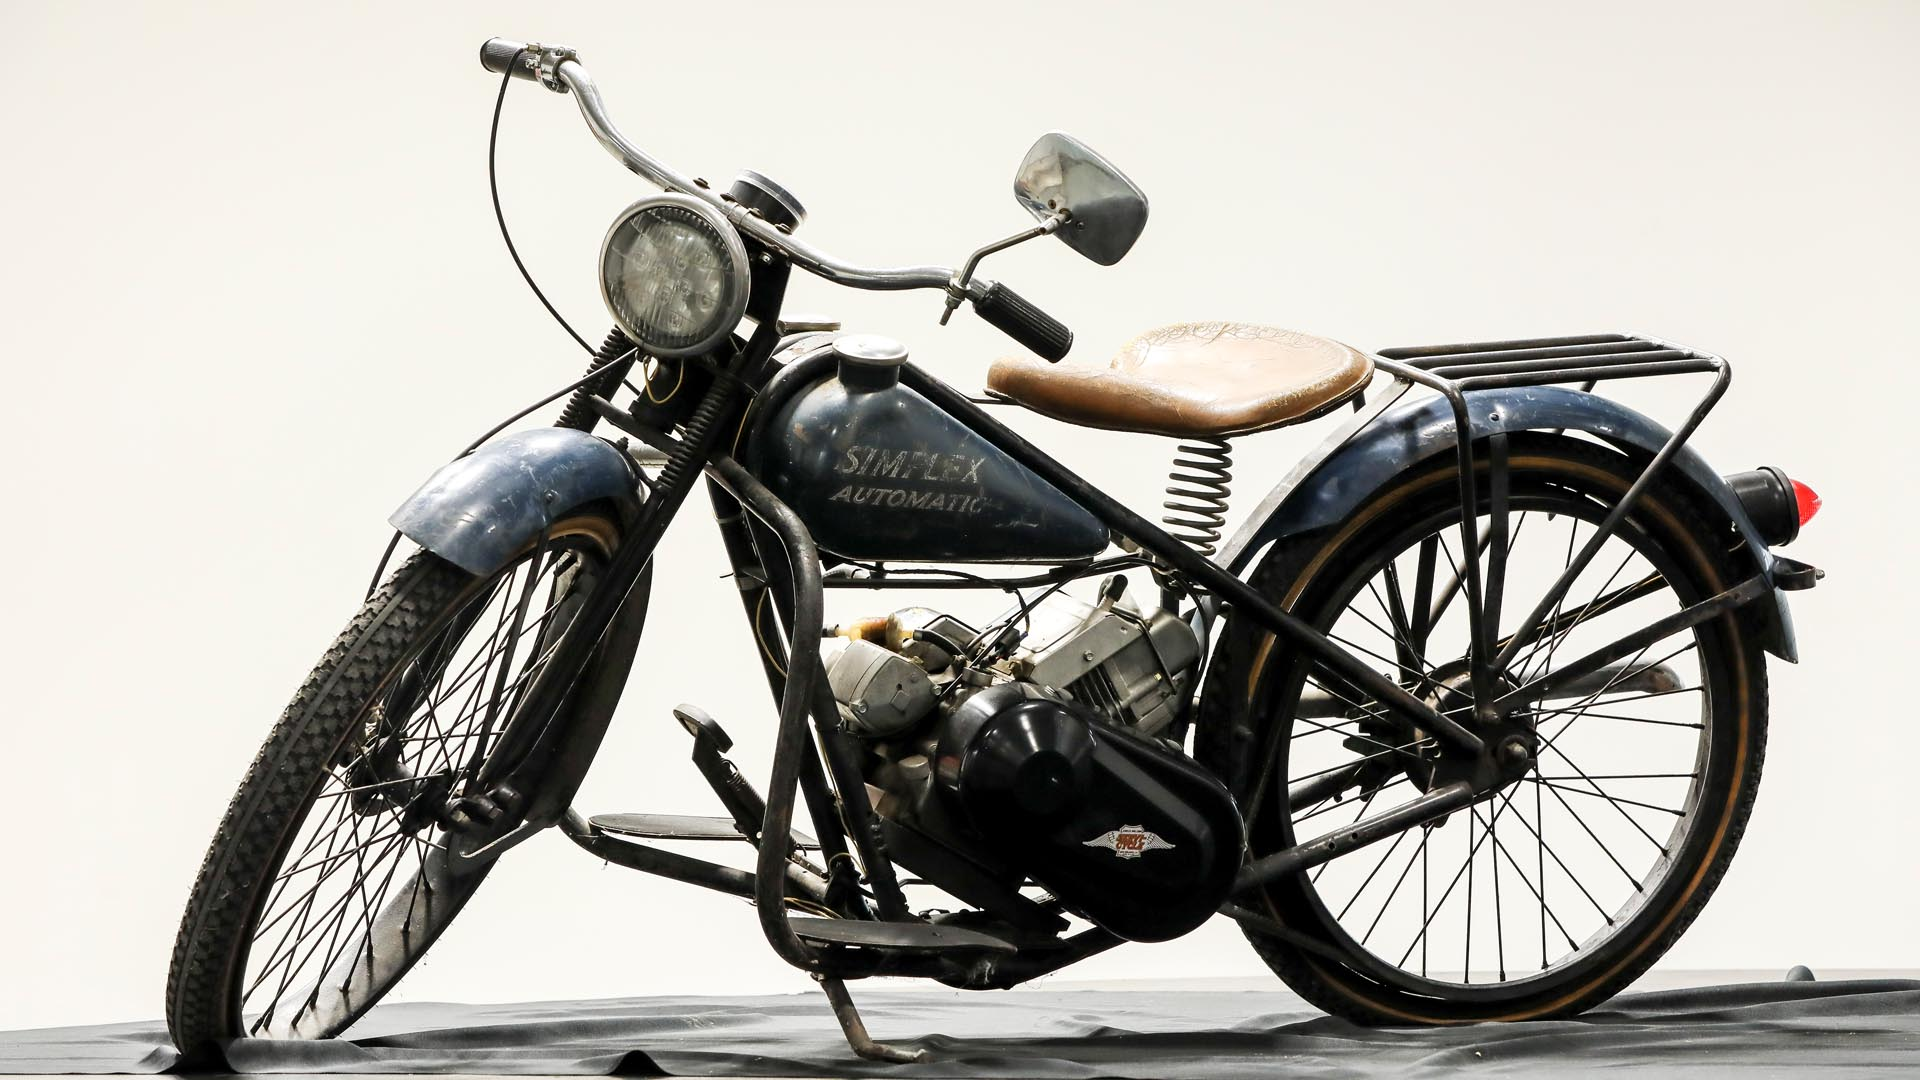 Simplex Automatic Motorcycle with Tecumseh Engine